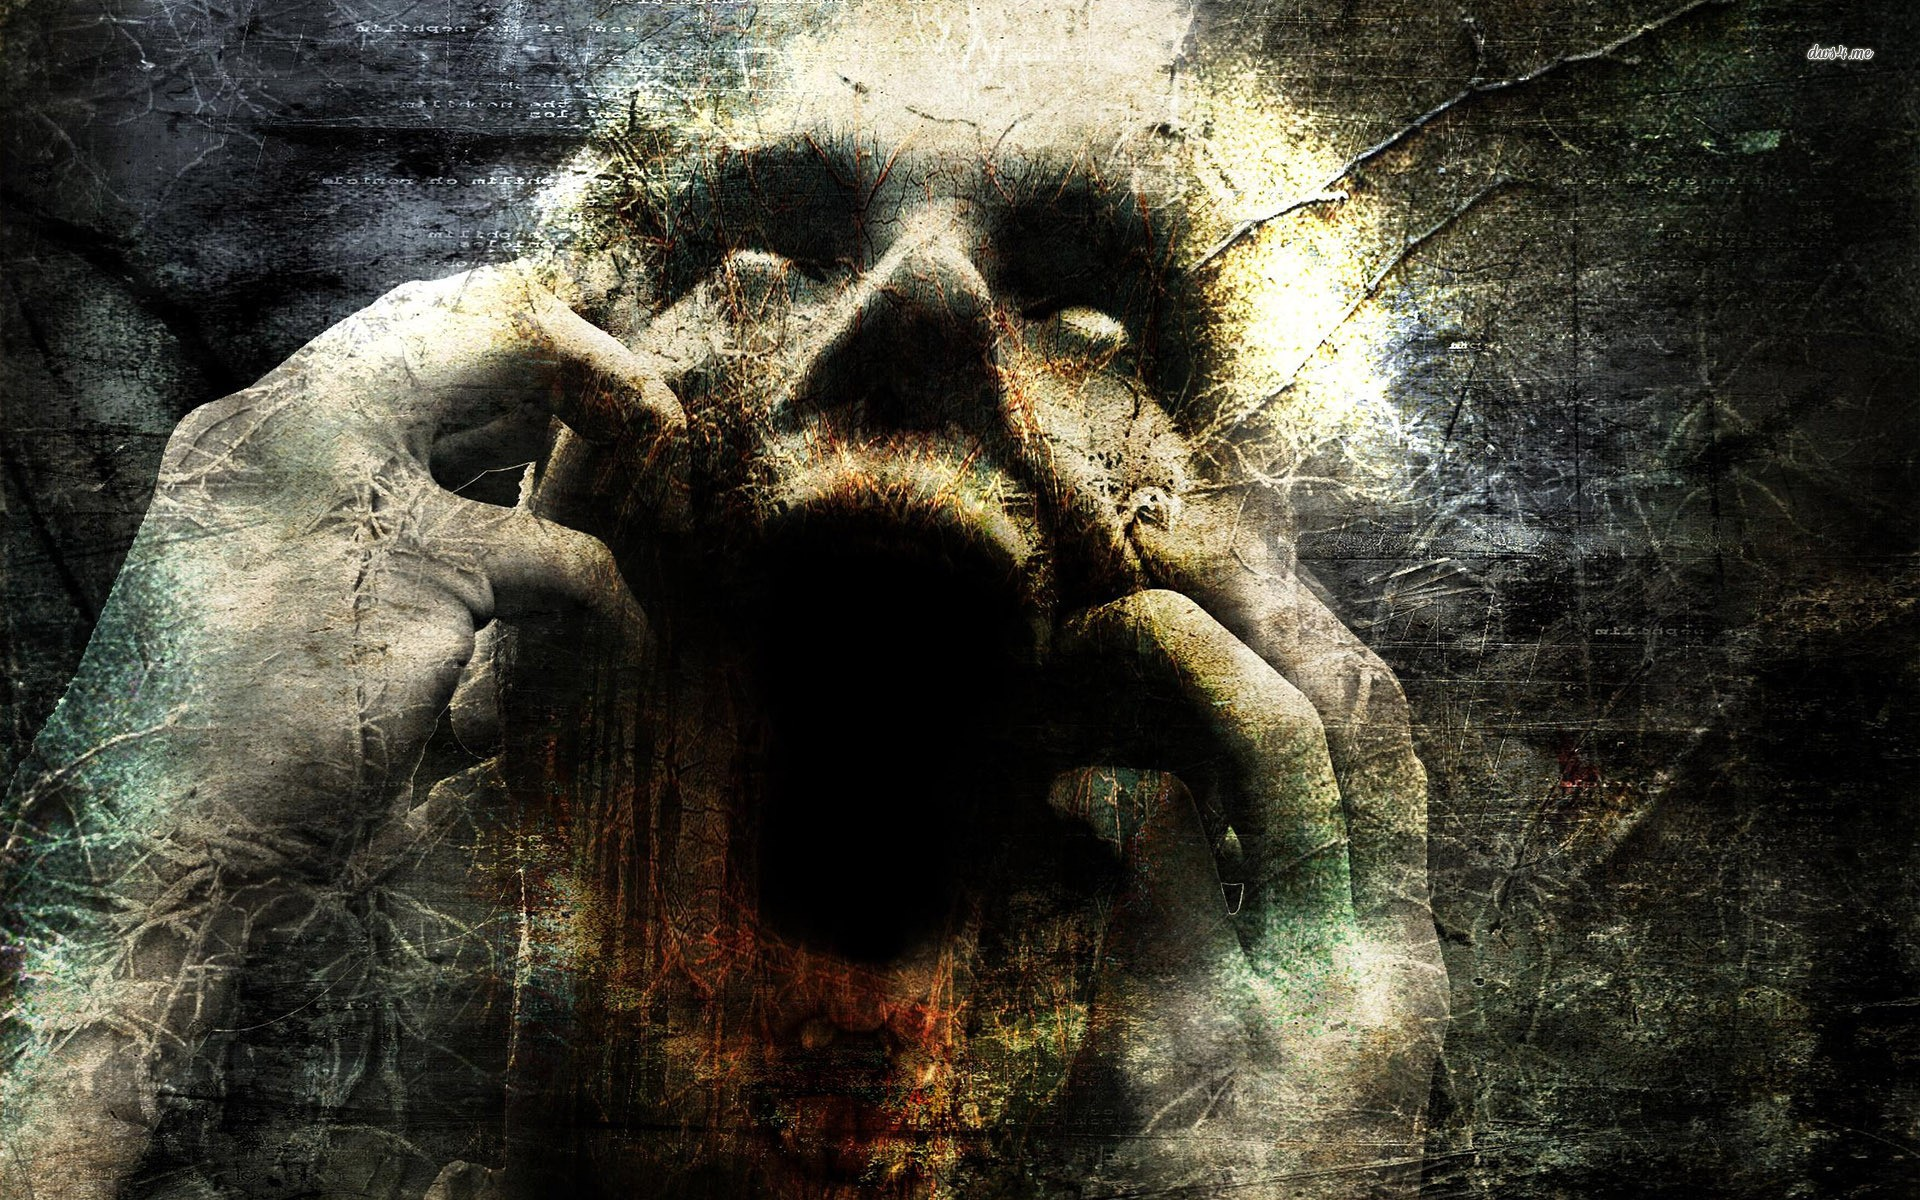 Horror Hd Wallpapers For Android: Horror Wallpaper ·① Download Free Amazing Wallpapers For